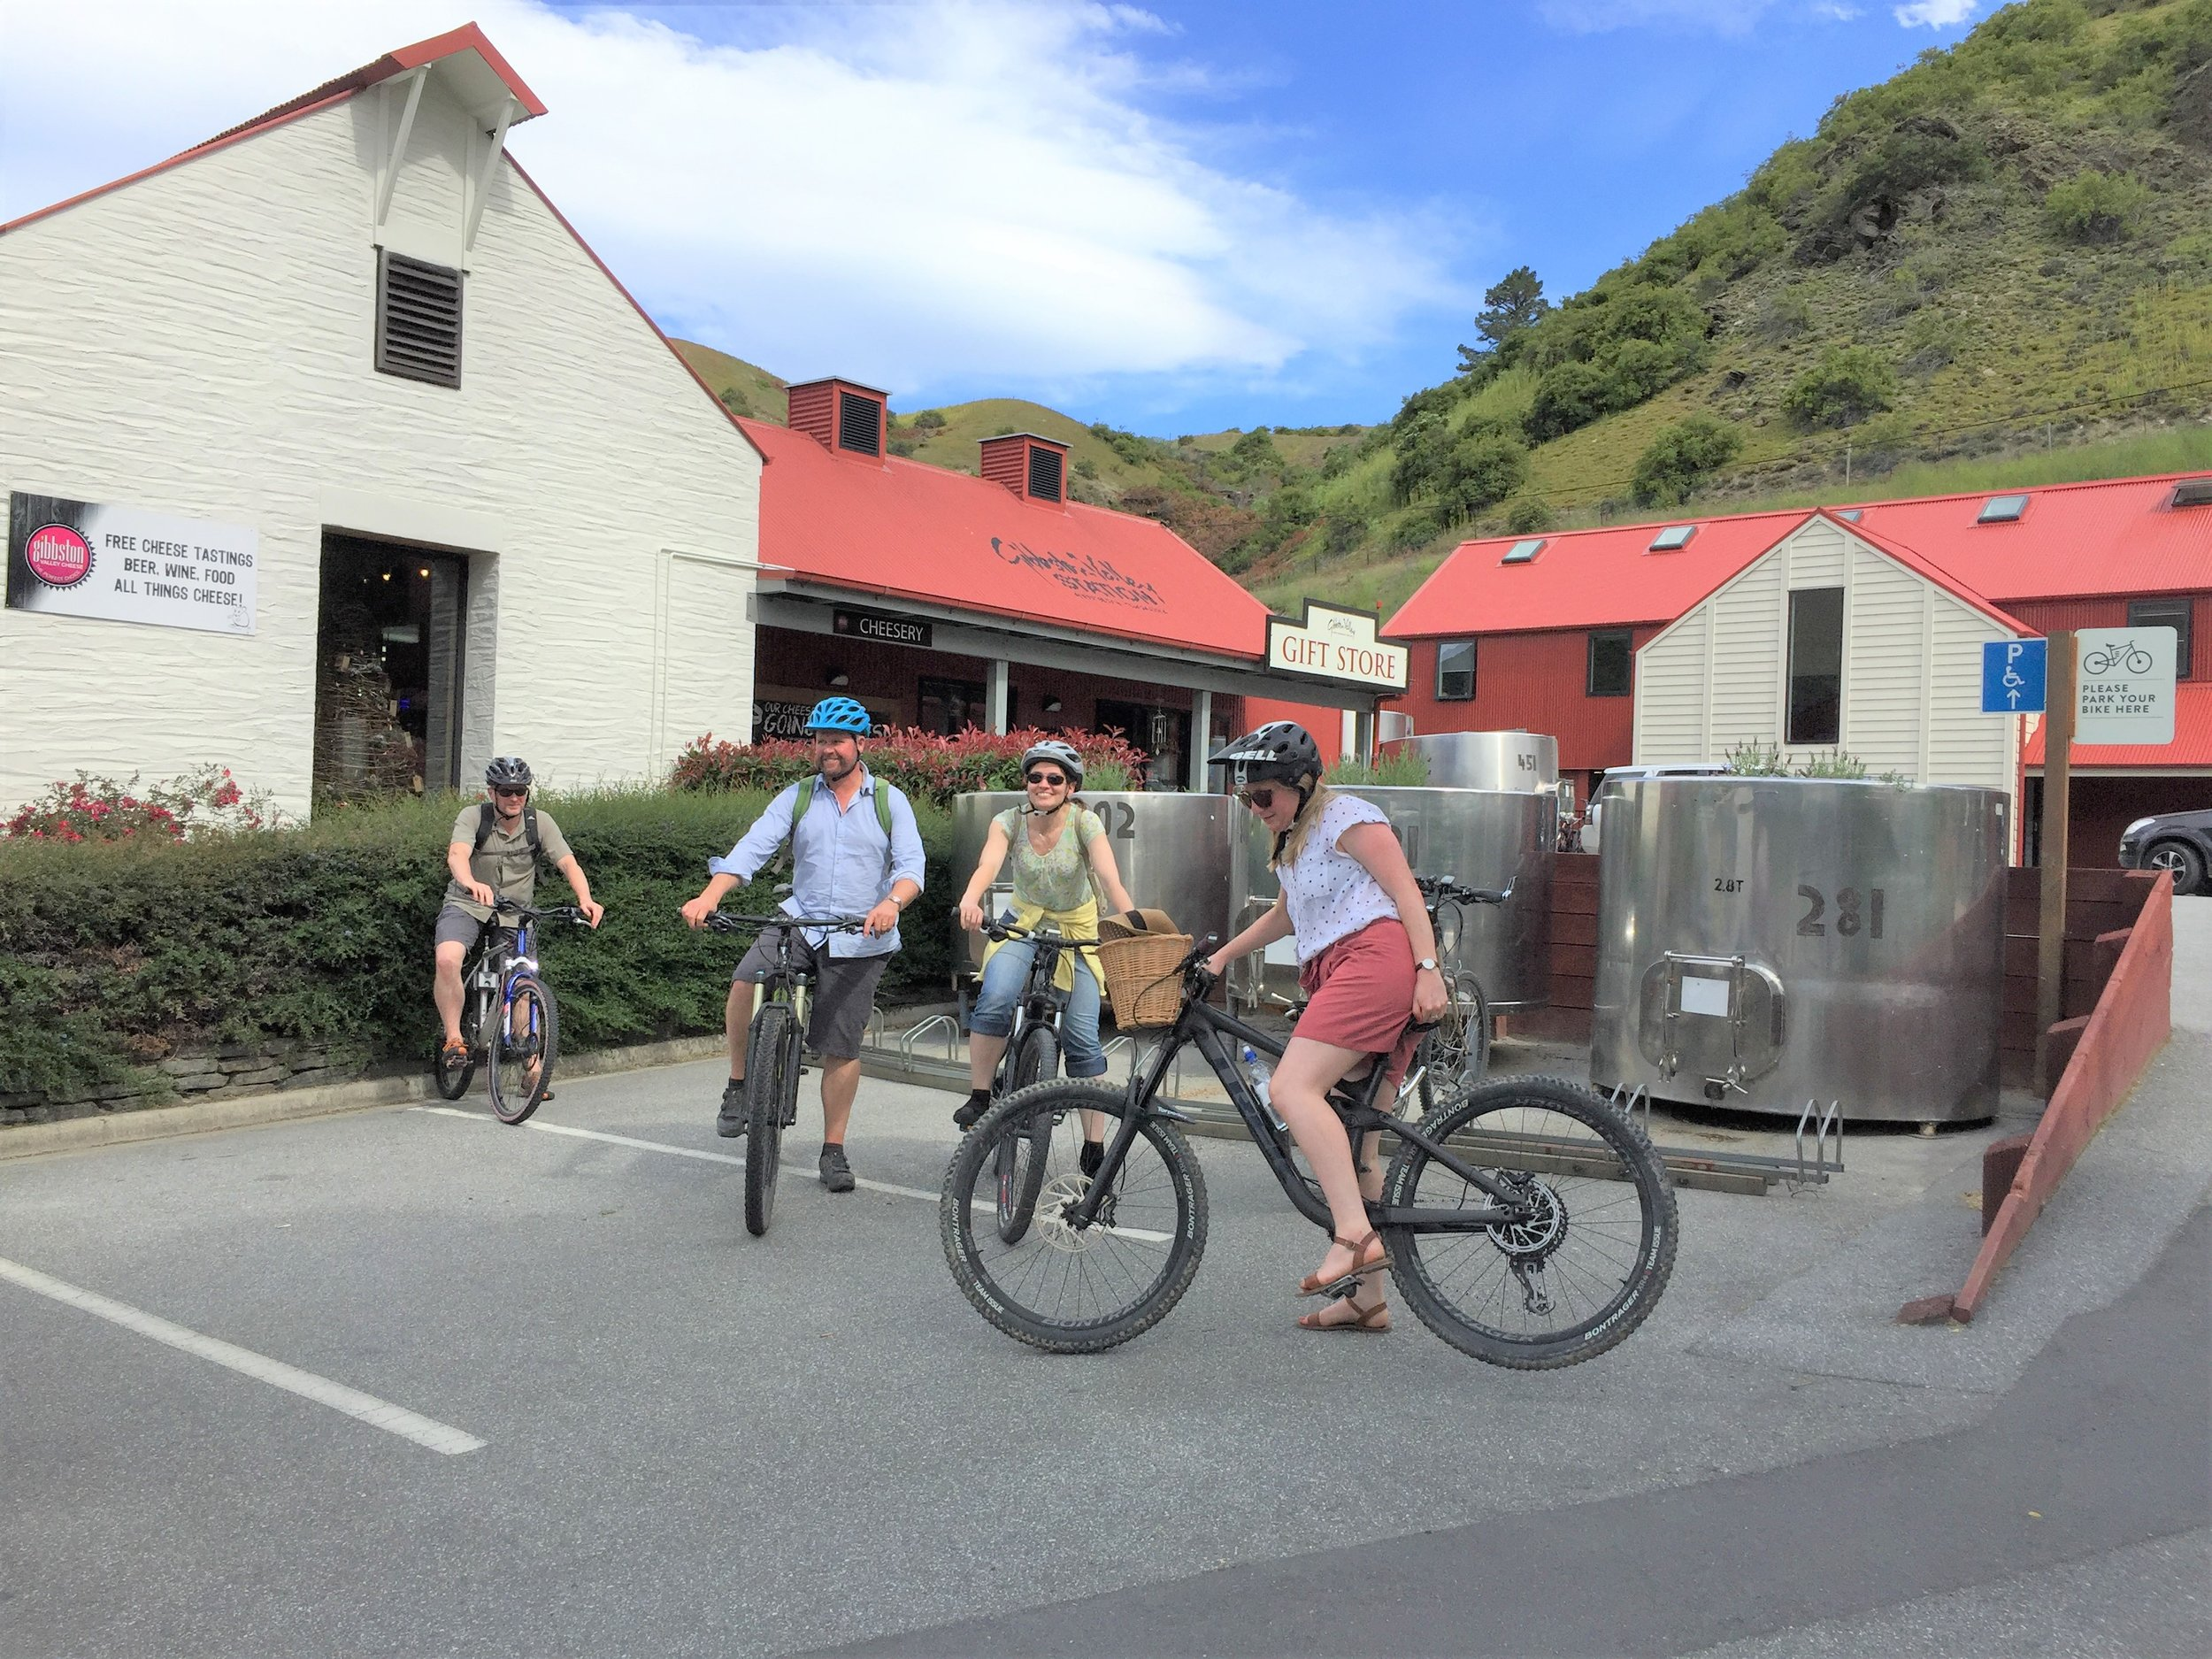 Boffa Miskell's Queenstown office. From left to right - Ralph Henderson (planner), Chris Ferguson (planner), Mathilde Menard (landscape architect) and Megan Ash (landscape architect). This office doesn't just bike to work - they bike at lunchtime, they bike to Friday after-work drinks, they even planned their Christmas Party to be cycle-centric.